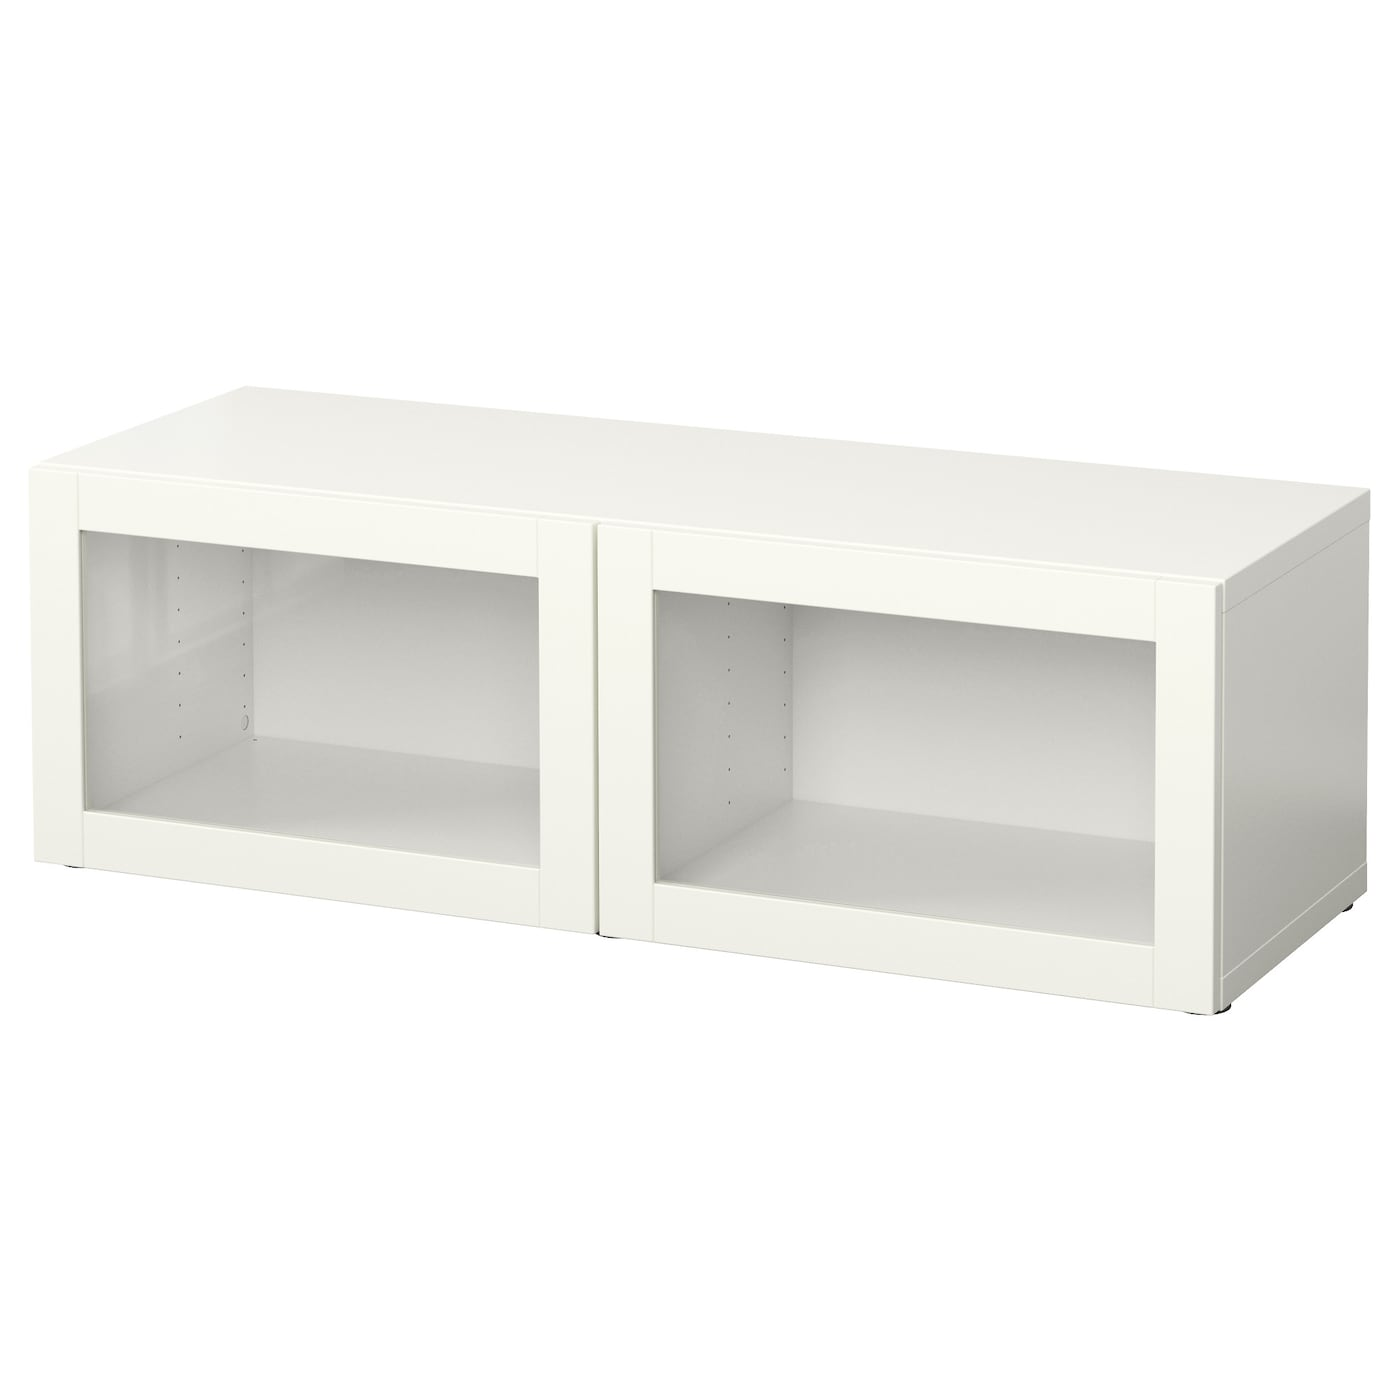 shelving unit with doors best 197 shelf unit with glass doors sindvik white 120x40x38 26051